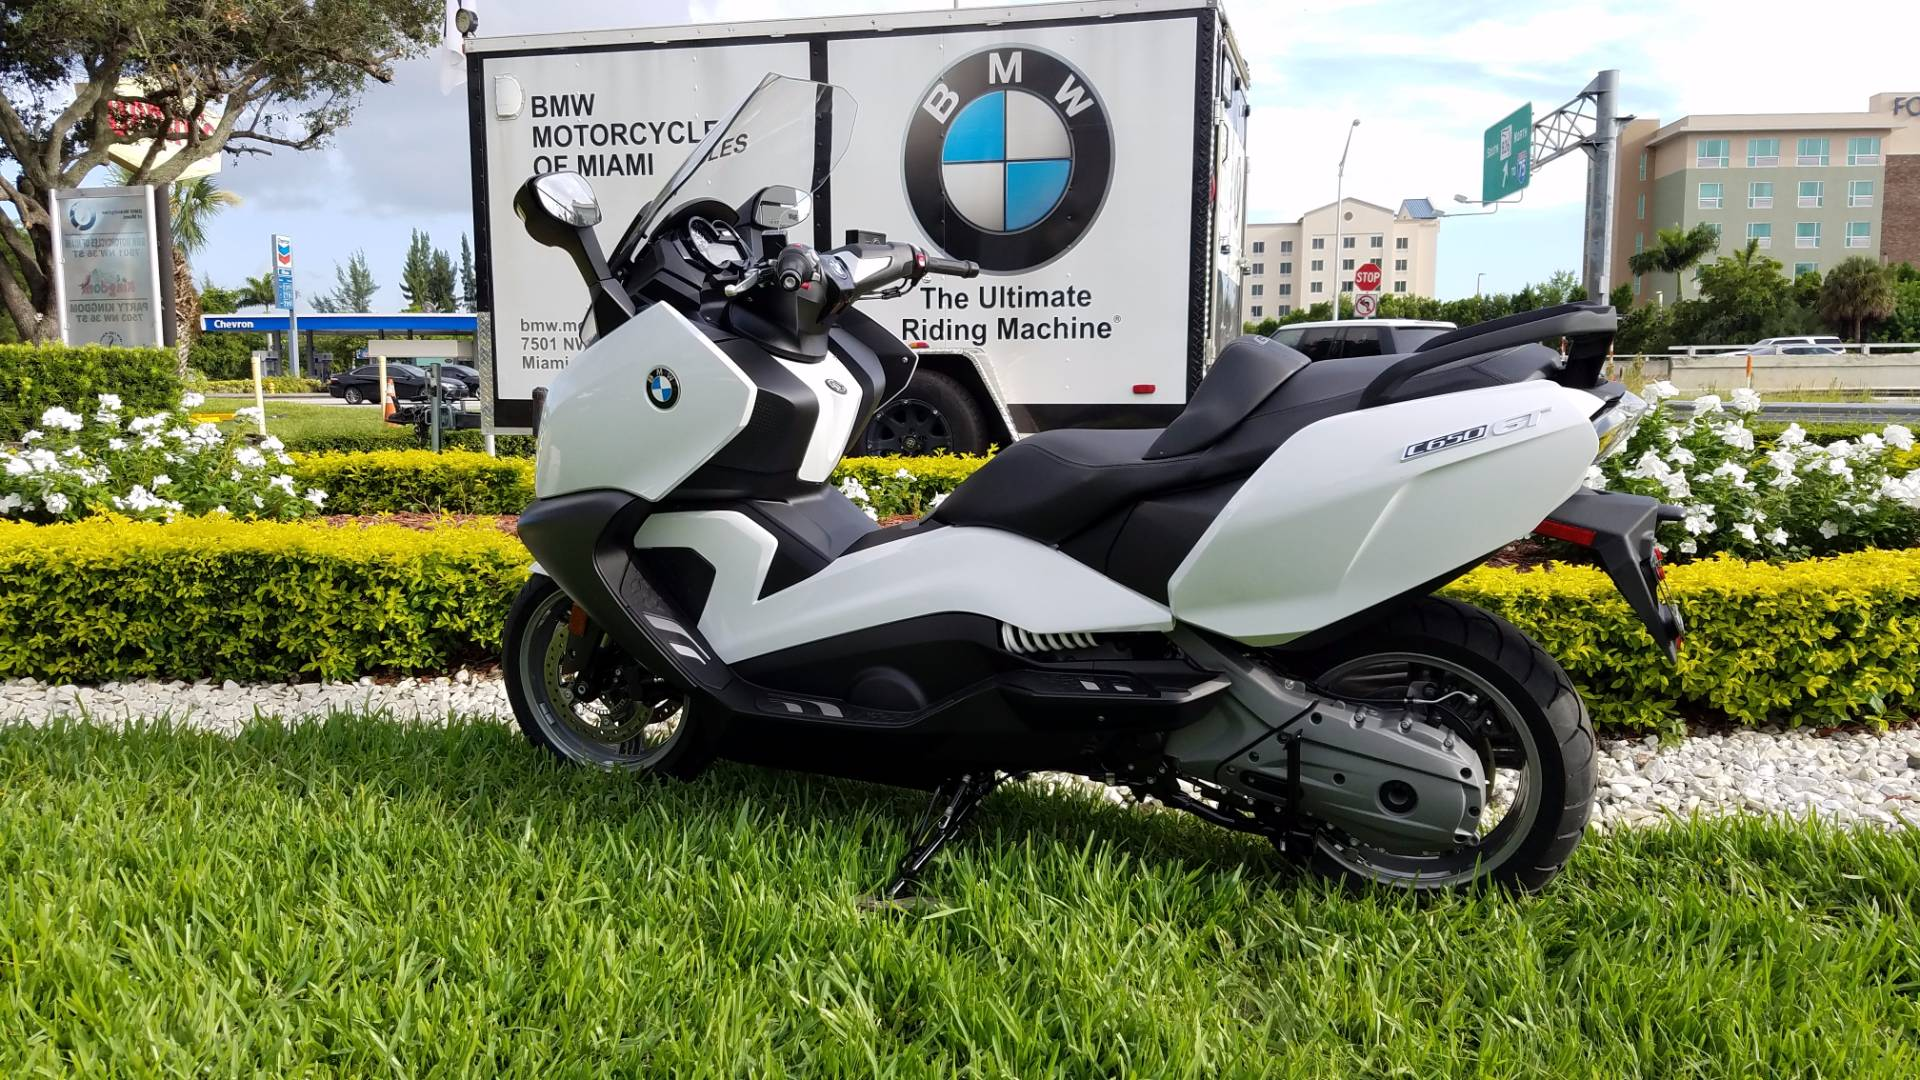 New 2017 BMW C 650 GT For Sale, BMW C 650 GT Black For Sale, BMW Motorcycle C 650 GT, new BMW Scooter, New BMW Motorcycle